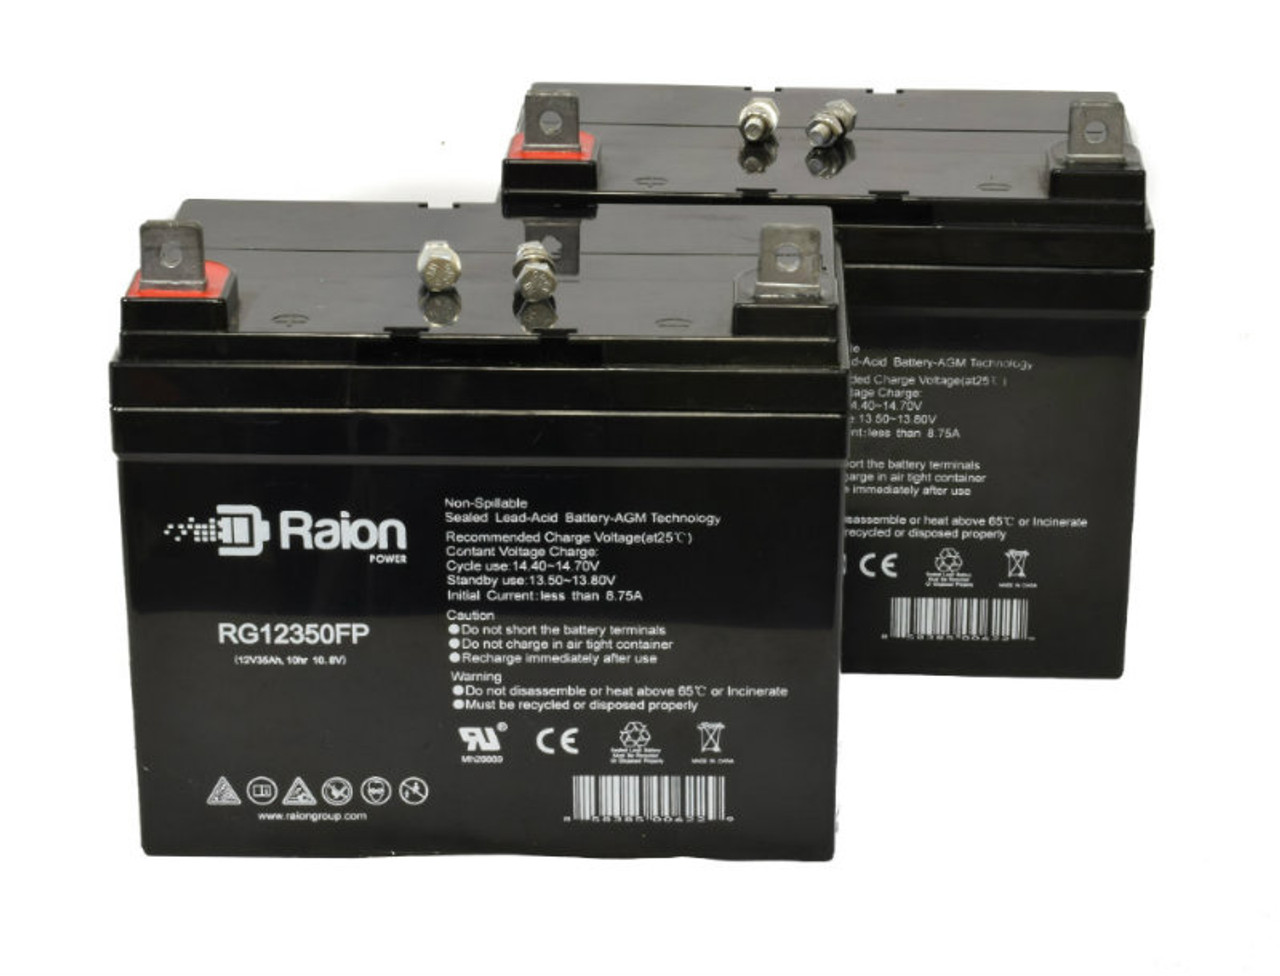 Raion Power RG12350FP Replacement Wheelchair Battery For Electric Mobility Little Rascal-Cycle Chair (2 Pack)